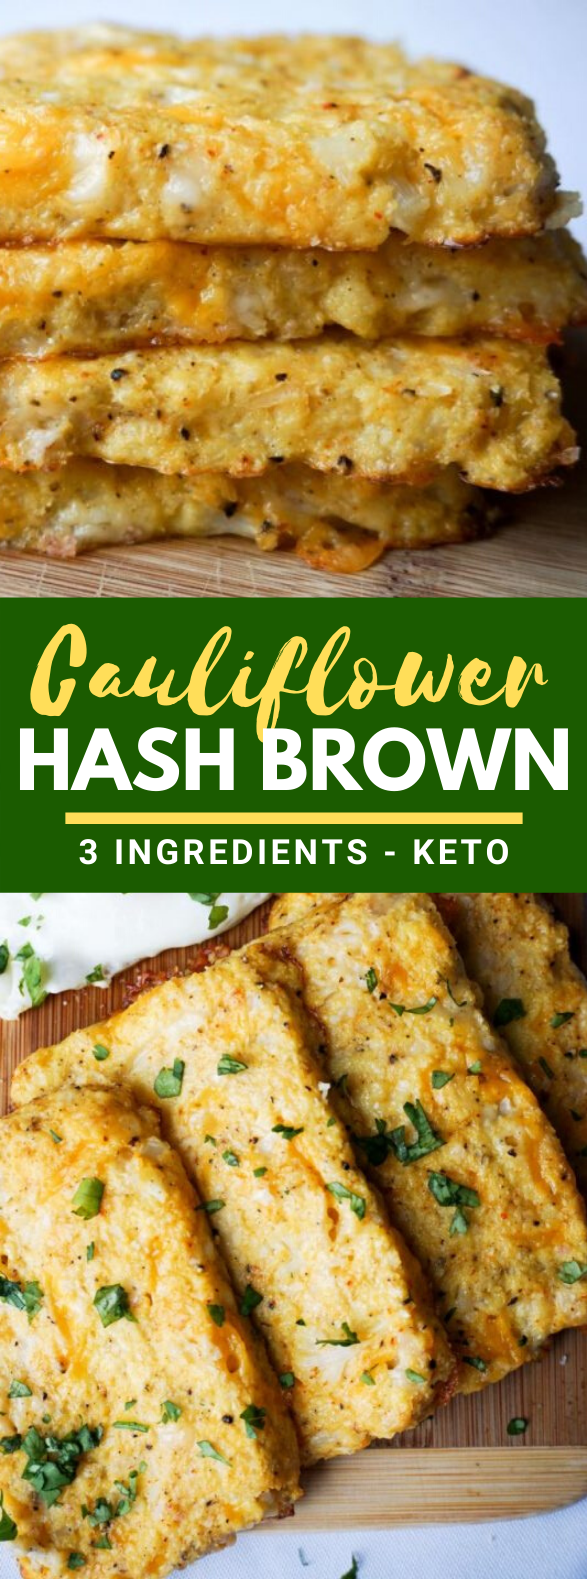 3 Ingredient Cauliflower Hash Browns #ketodiet #breakfast